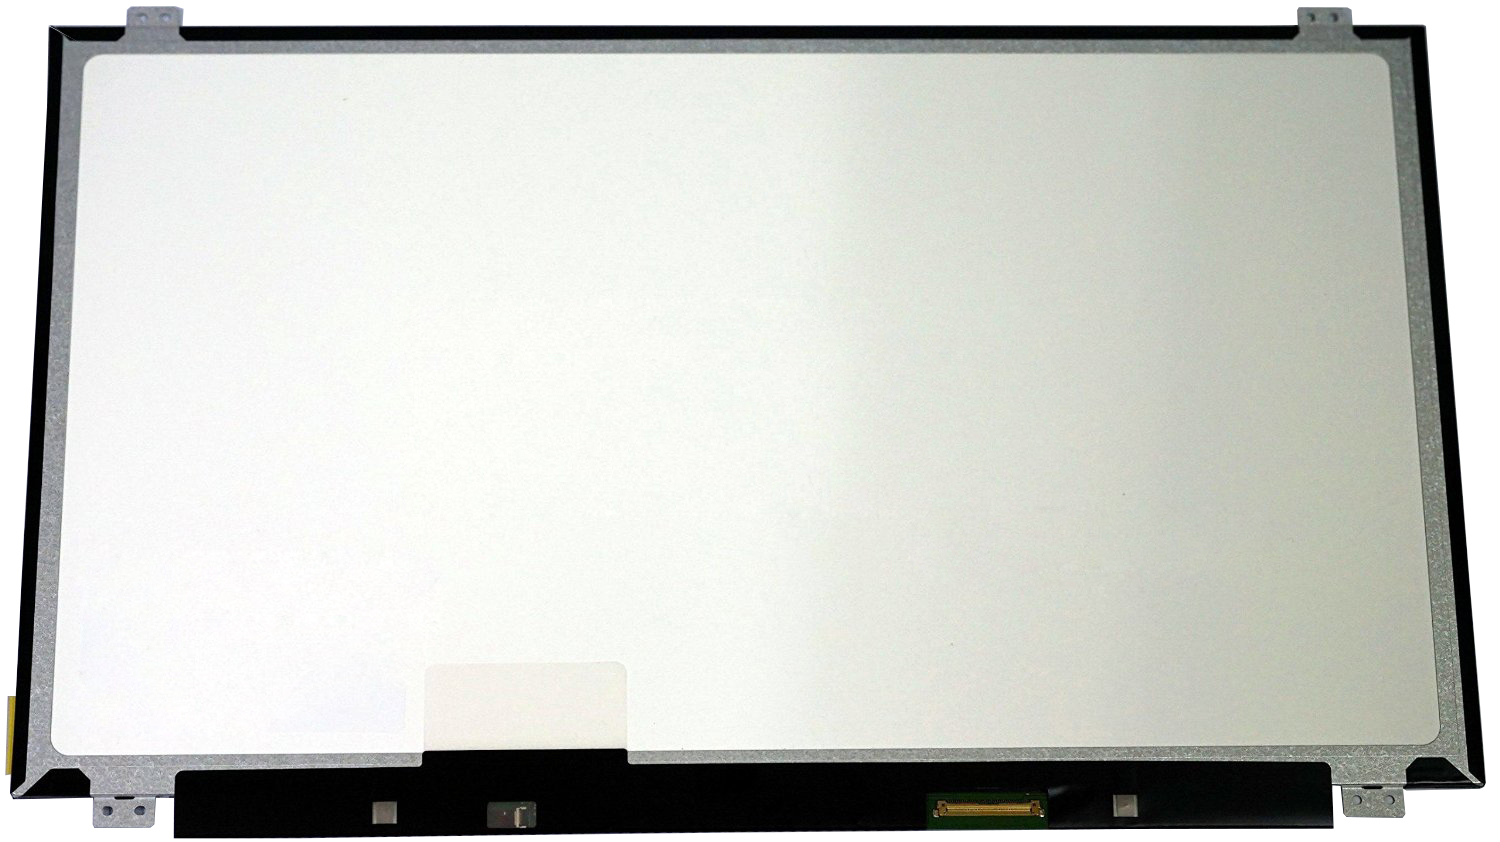 quying laptop lcd screen for dell latitude e5530 e6520 e6530 series 15 6 inch 1920x1080 40pin tk QuYing Laptop LCD Screen for Acer CHROMEBOOK 15 CB5-571 C910 SERIES (15.6 inch 1920x1080 30Pin IPS N)